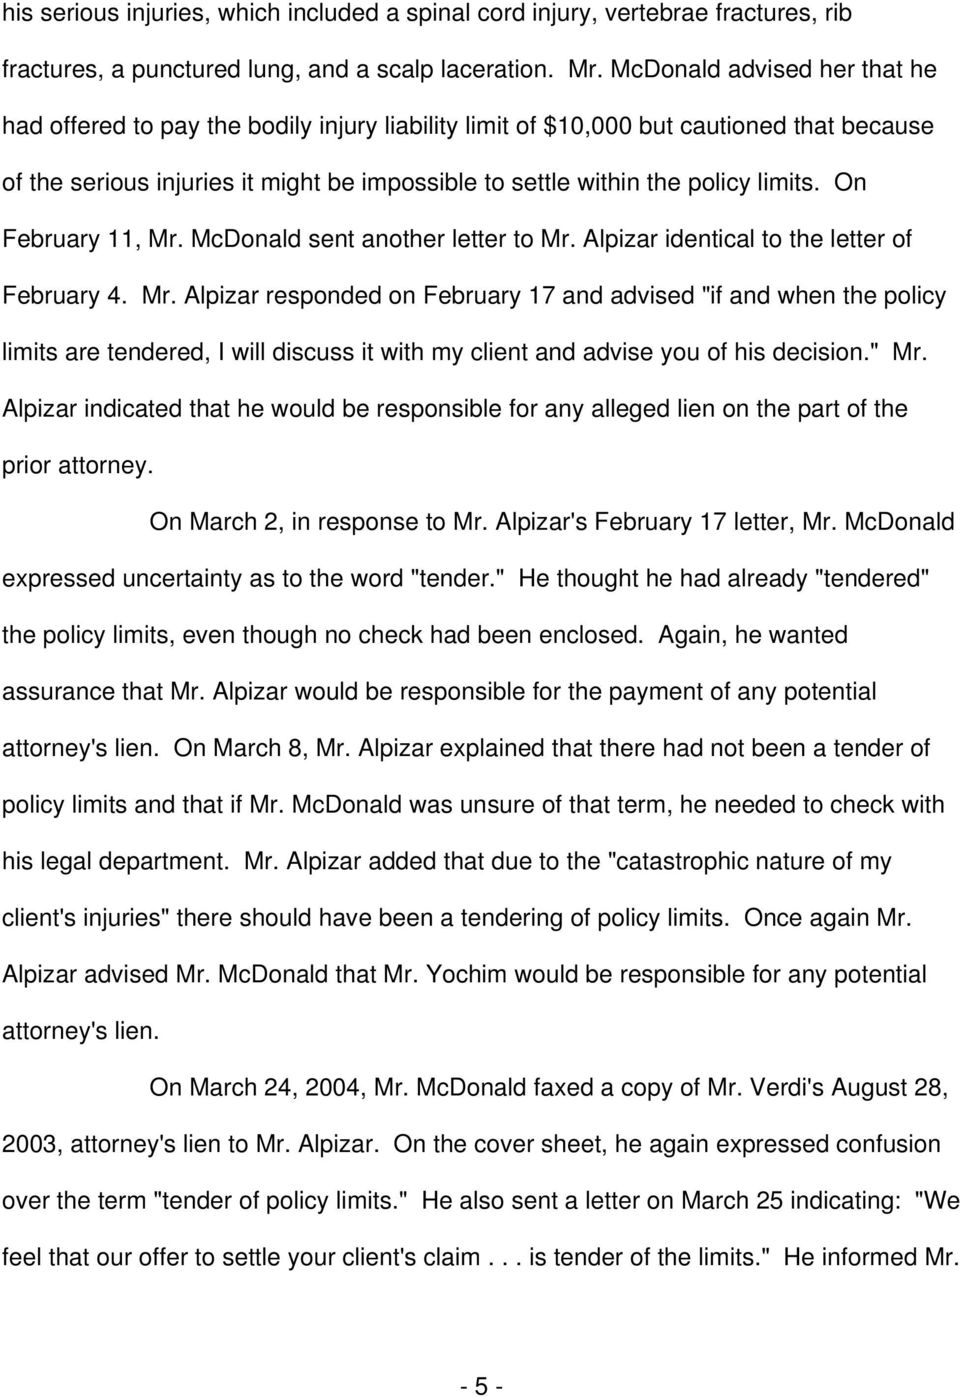 "limits. On February 11, Mr. McDonald sent another letter to Mr. Alpizar identical to the letter of February 4. Mr. Alpizar responded on February 17 and advised ""if and when the policy limits are tendered, I will discuss it with my client and advise you of his decision."